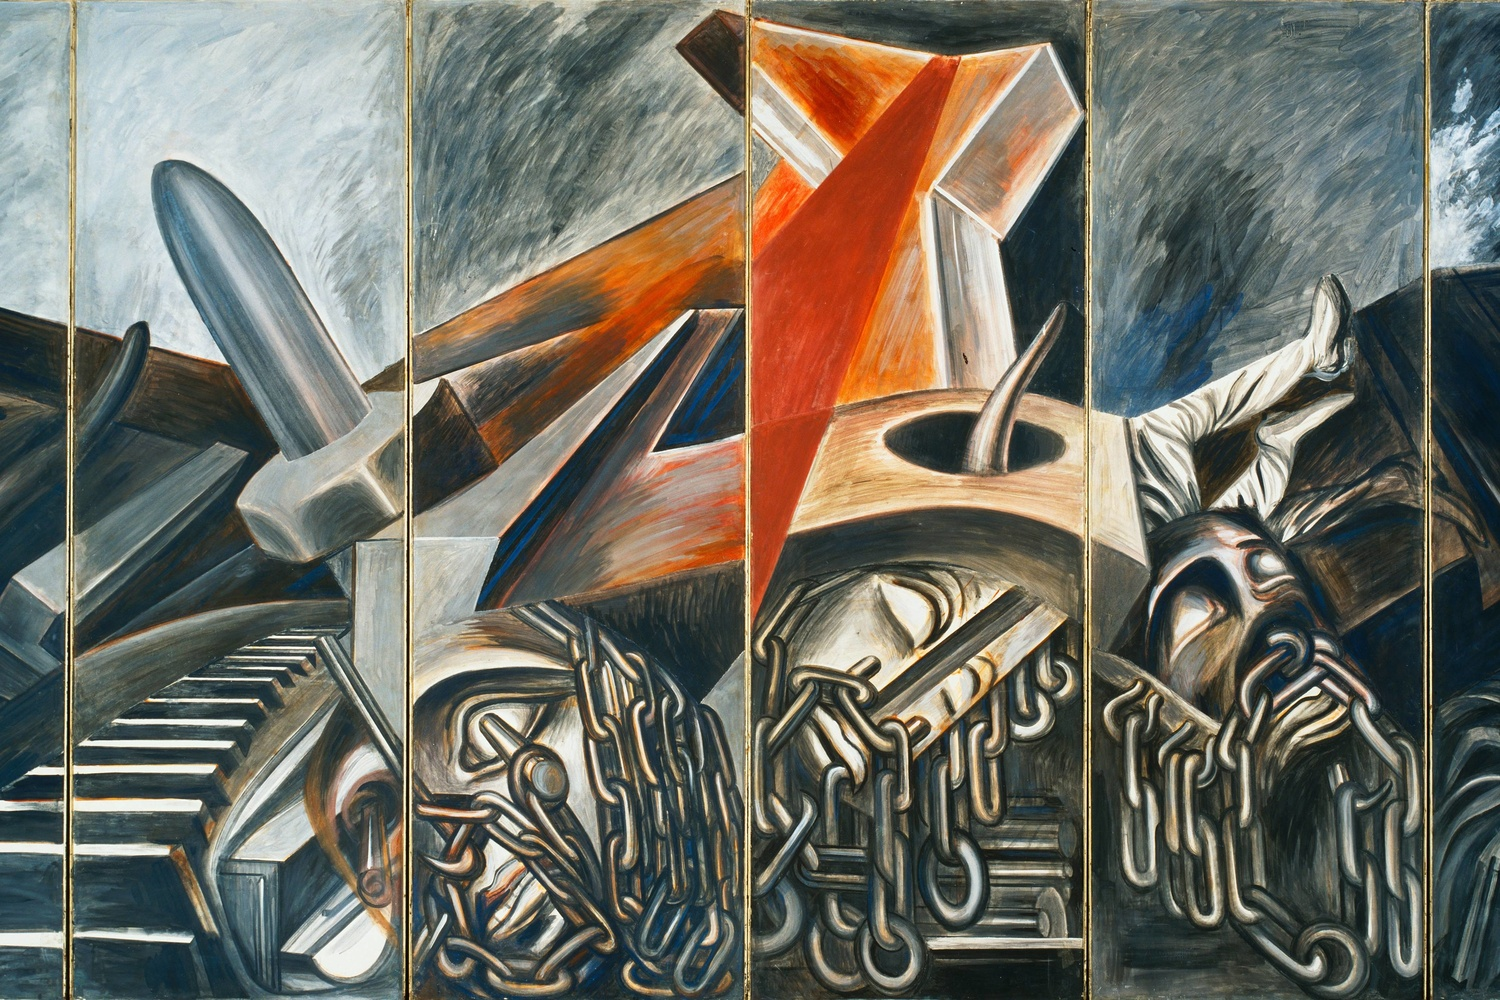 "José Clemente Orozco. Dive Bomber and Tank. 1940. Fresco, six panels, each 9' × 36"" (275 × 91.4 cm), overall 9 × 18' (275 × 550 cm). Commissioned through the Abby Aldrich Rockefeller Fund. © 2019 José Clemente Orozco/Artists Rights Society (ARS), New York/SOMAAP, Mexico"